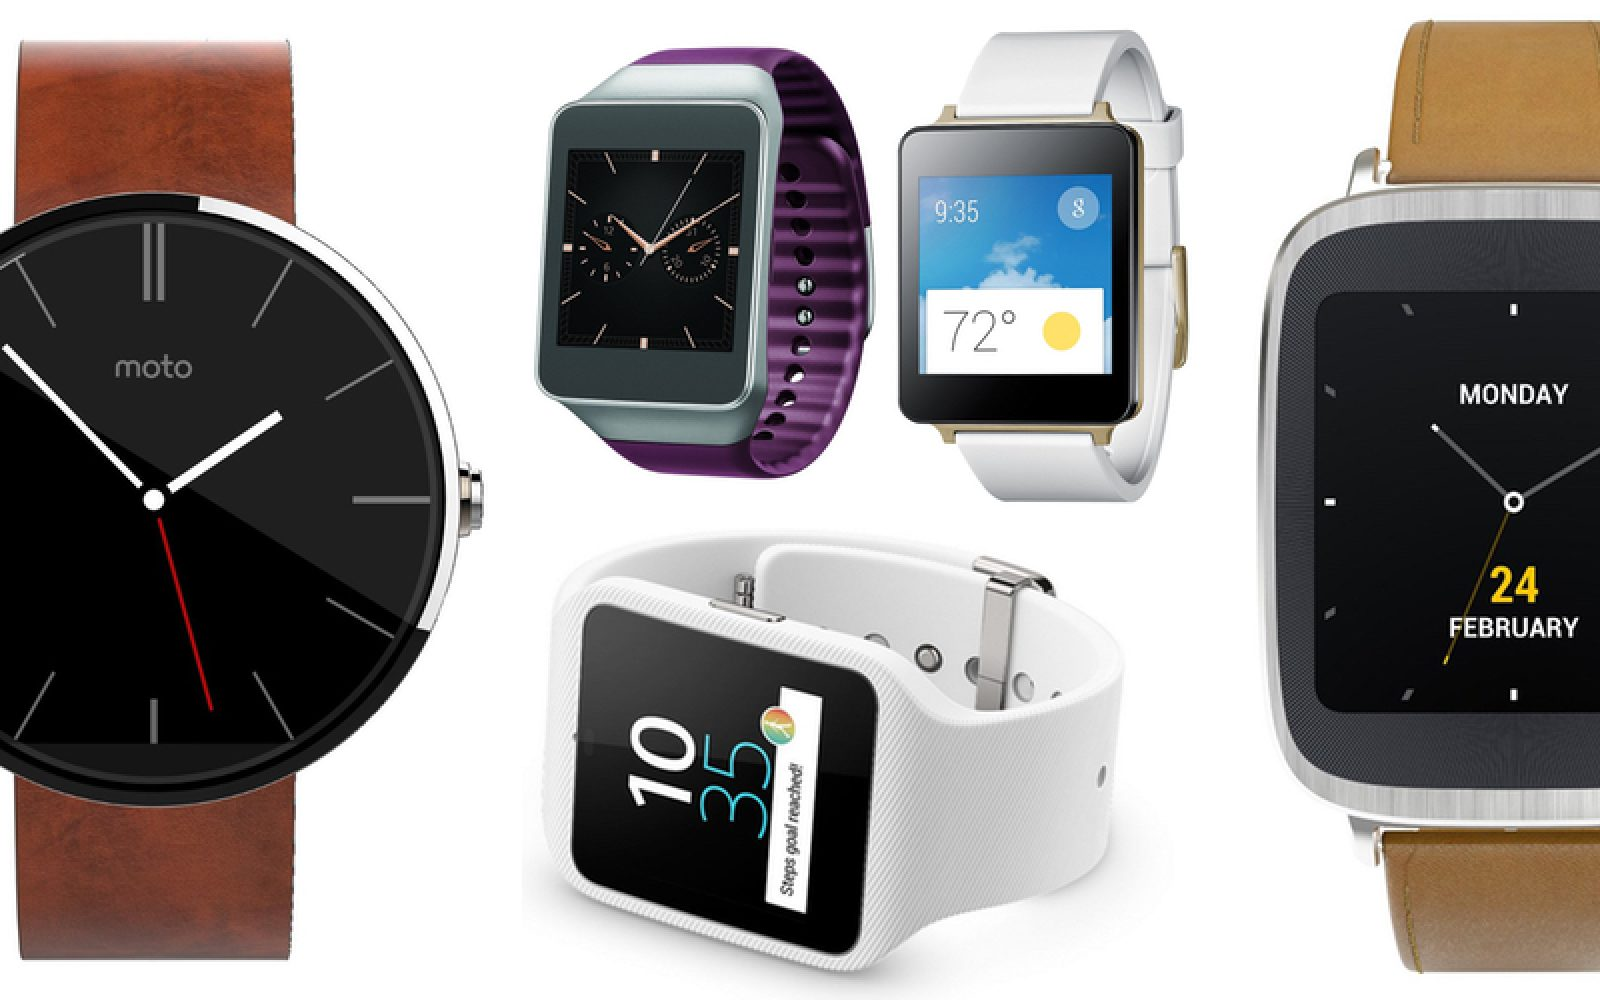 Roundup: Last year's Android Wear watches are a painless and inexpensive way to get in to the platform